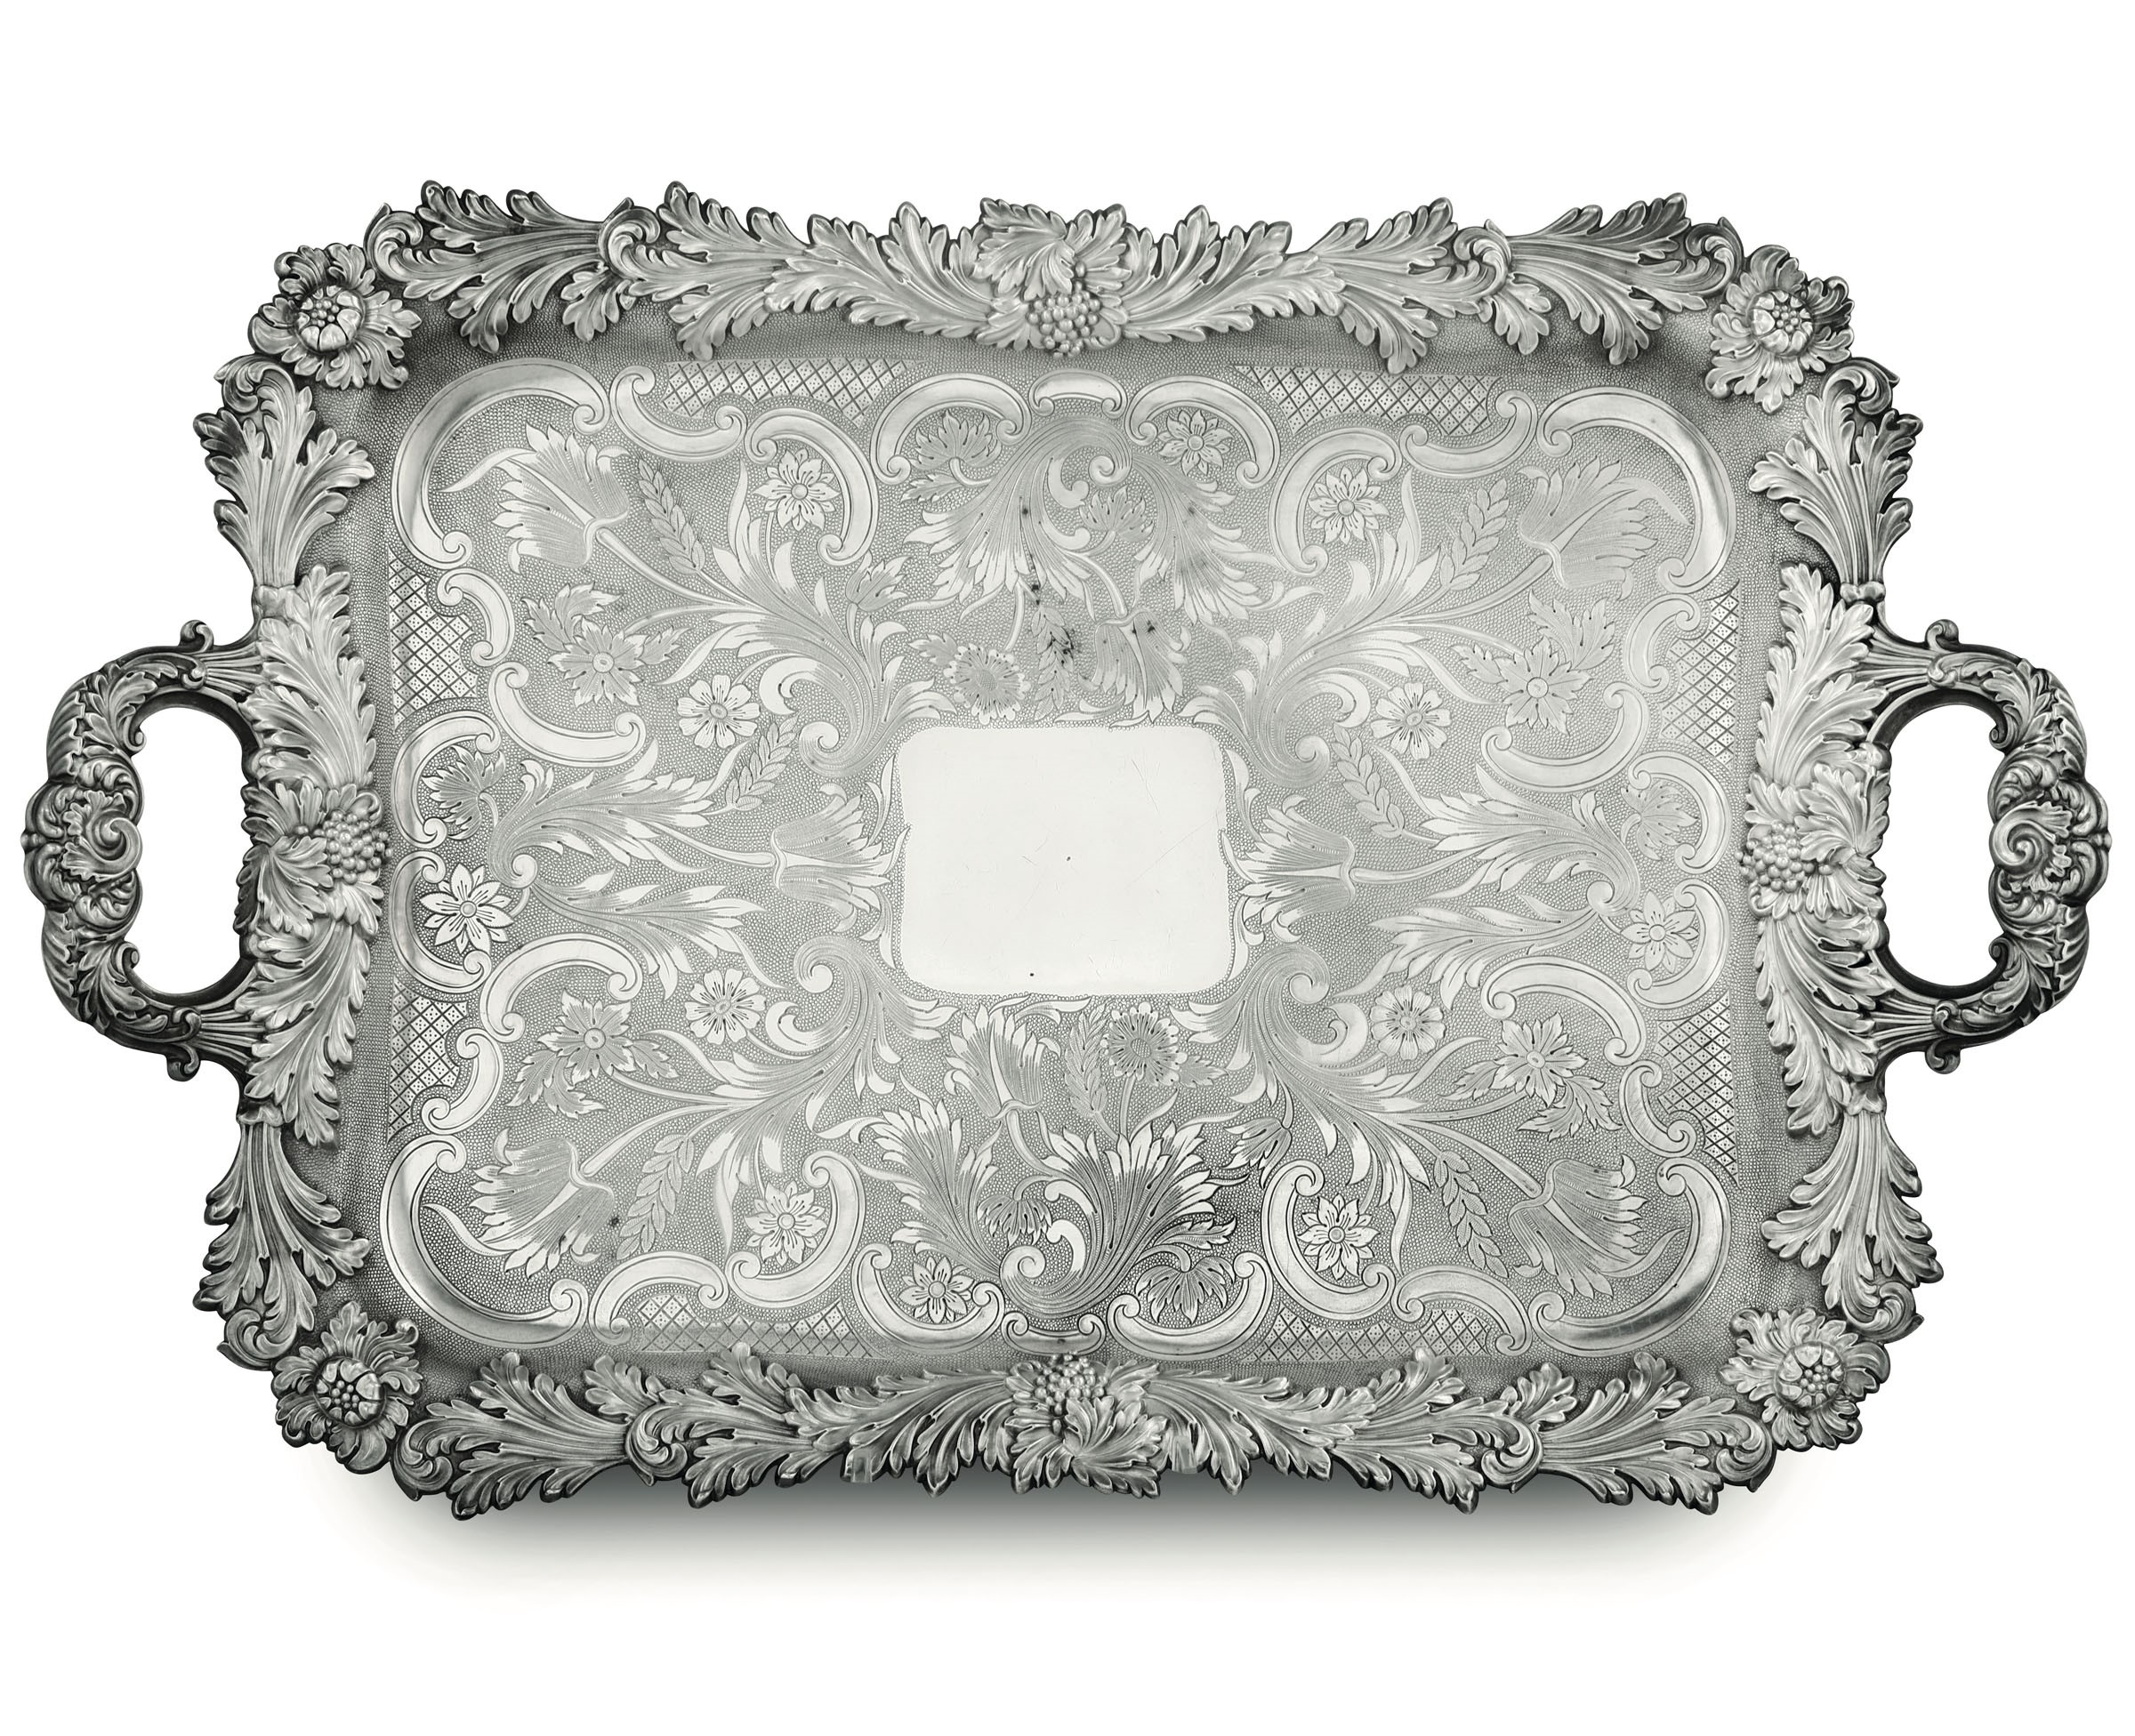 Lot 44 - A silver tray, Maison Odiot, Paris, late 1800s - Molten and chiselled silver. 3390gr, [...]